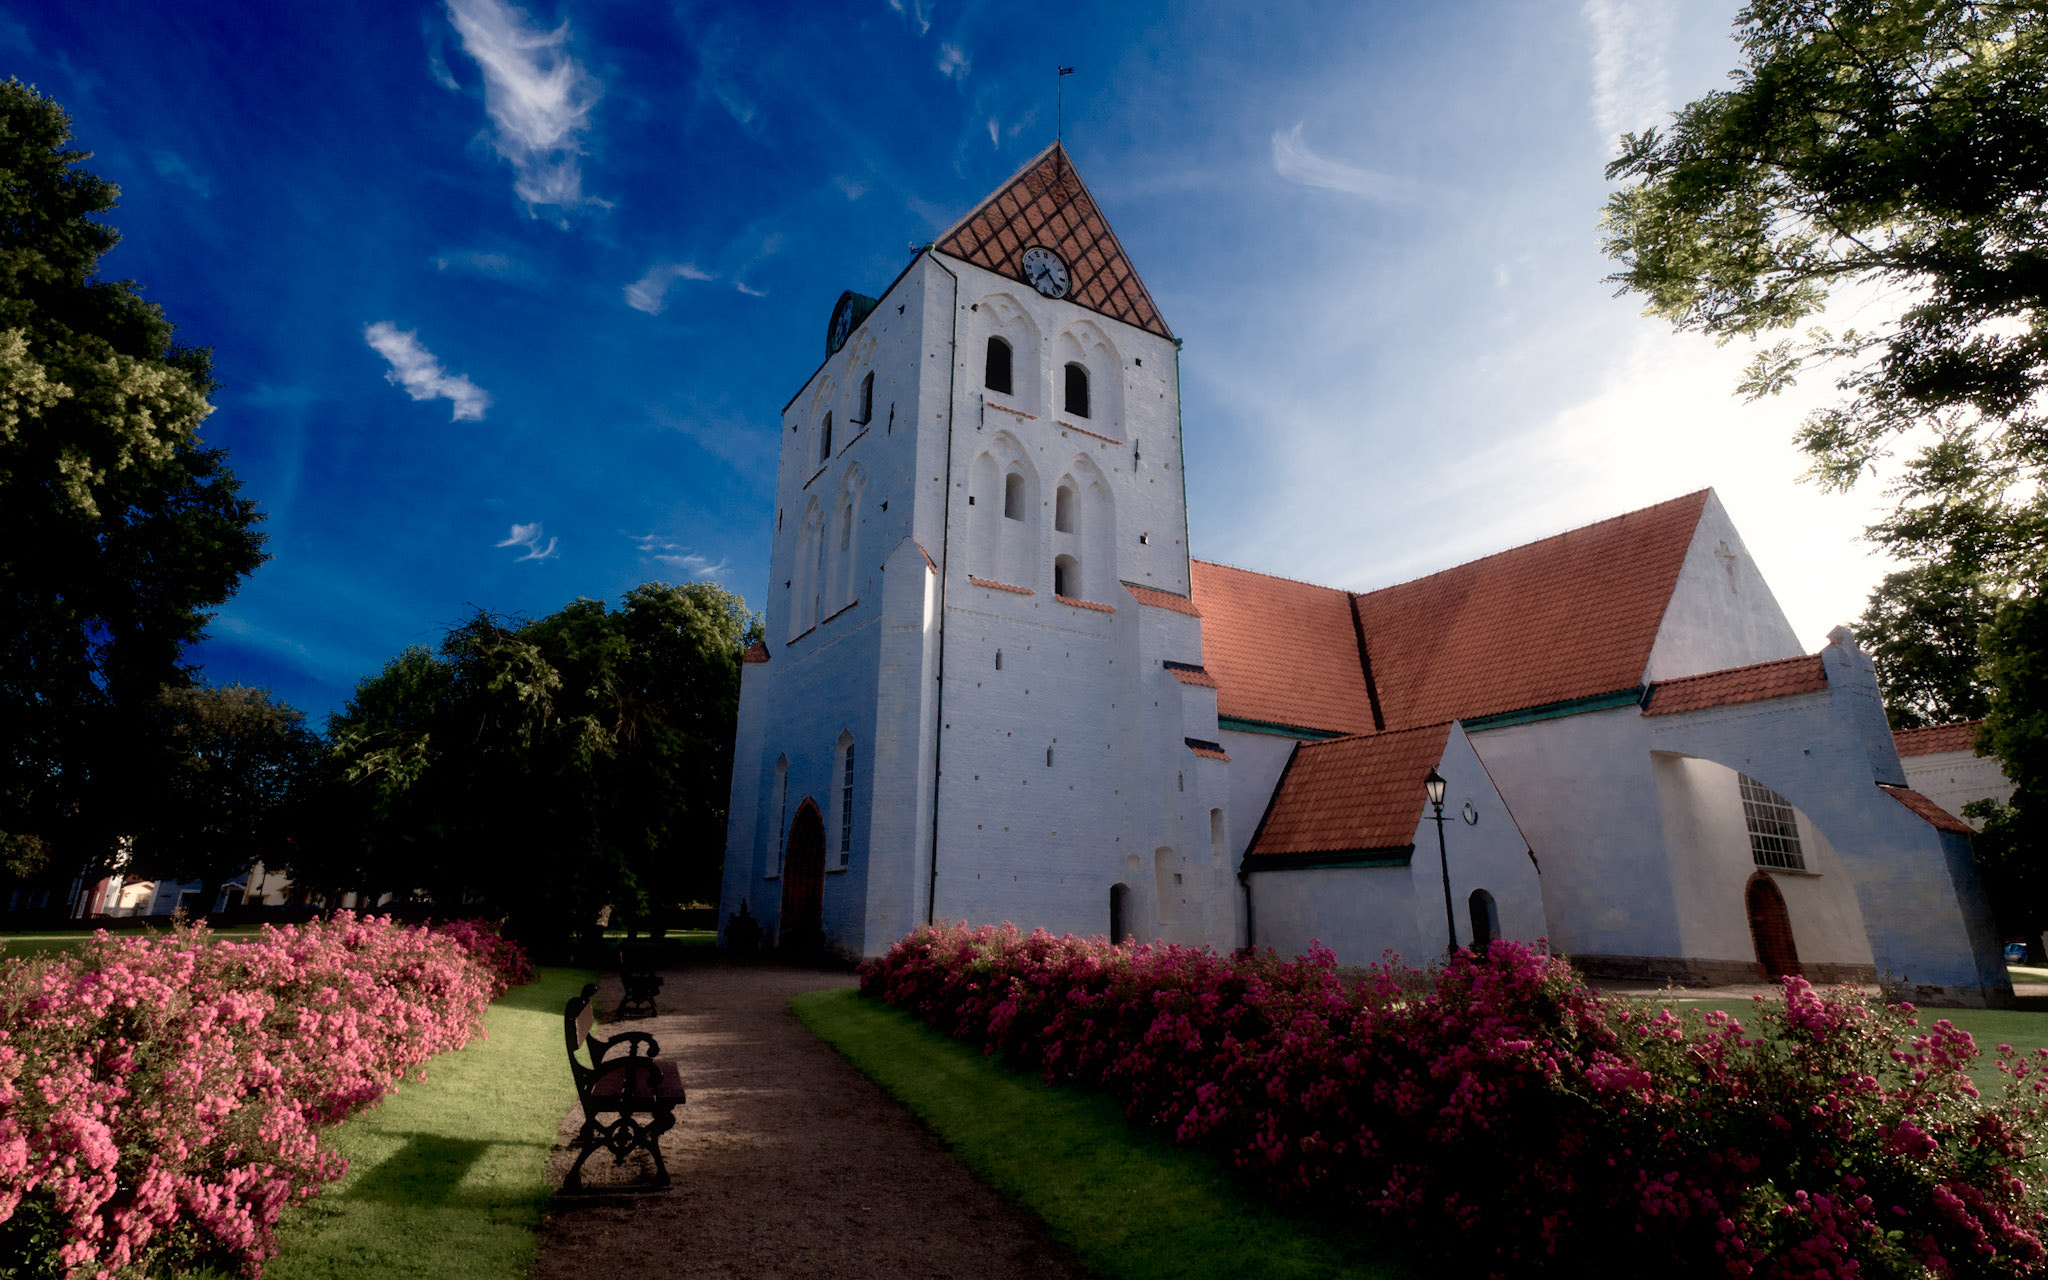 Photograph Church at 7.23 by Peter Giger on 500px